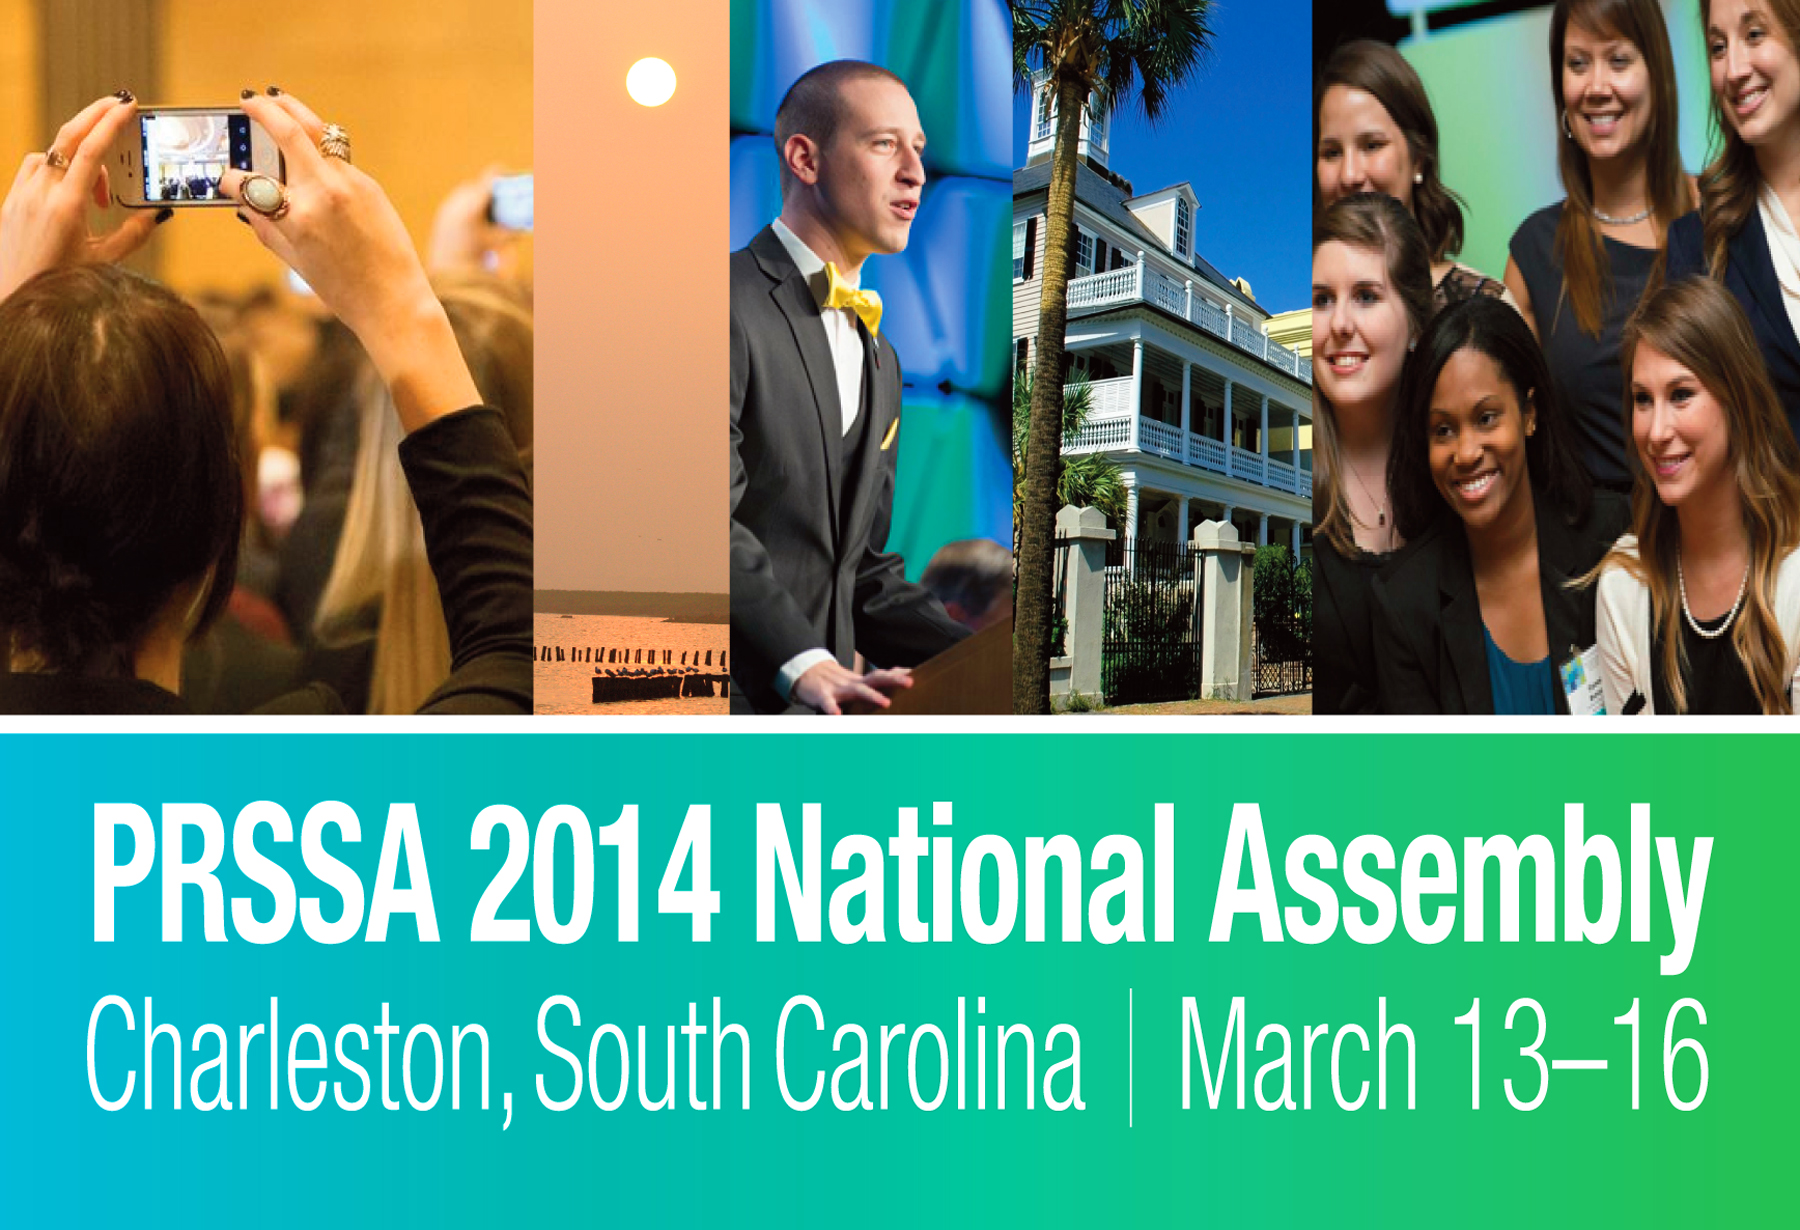 Why You Should Attend the PRSSA 2014 National Assembly